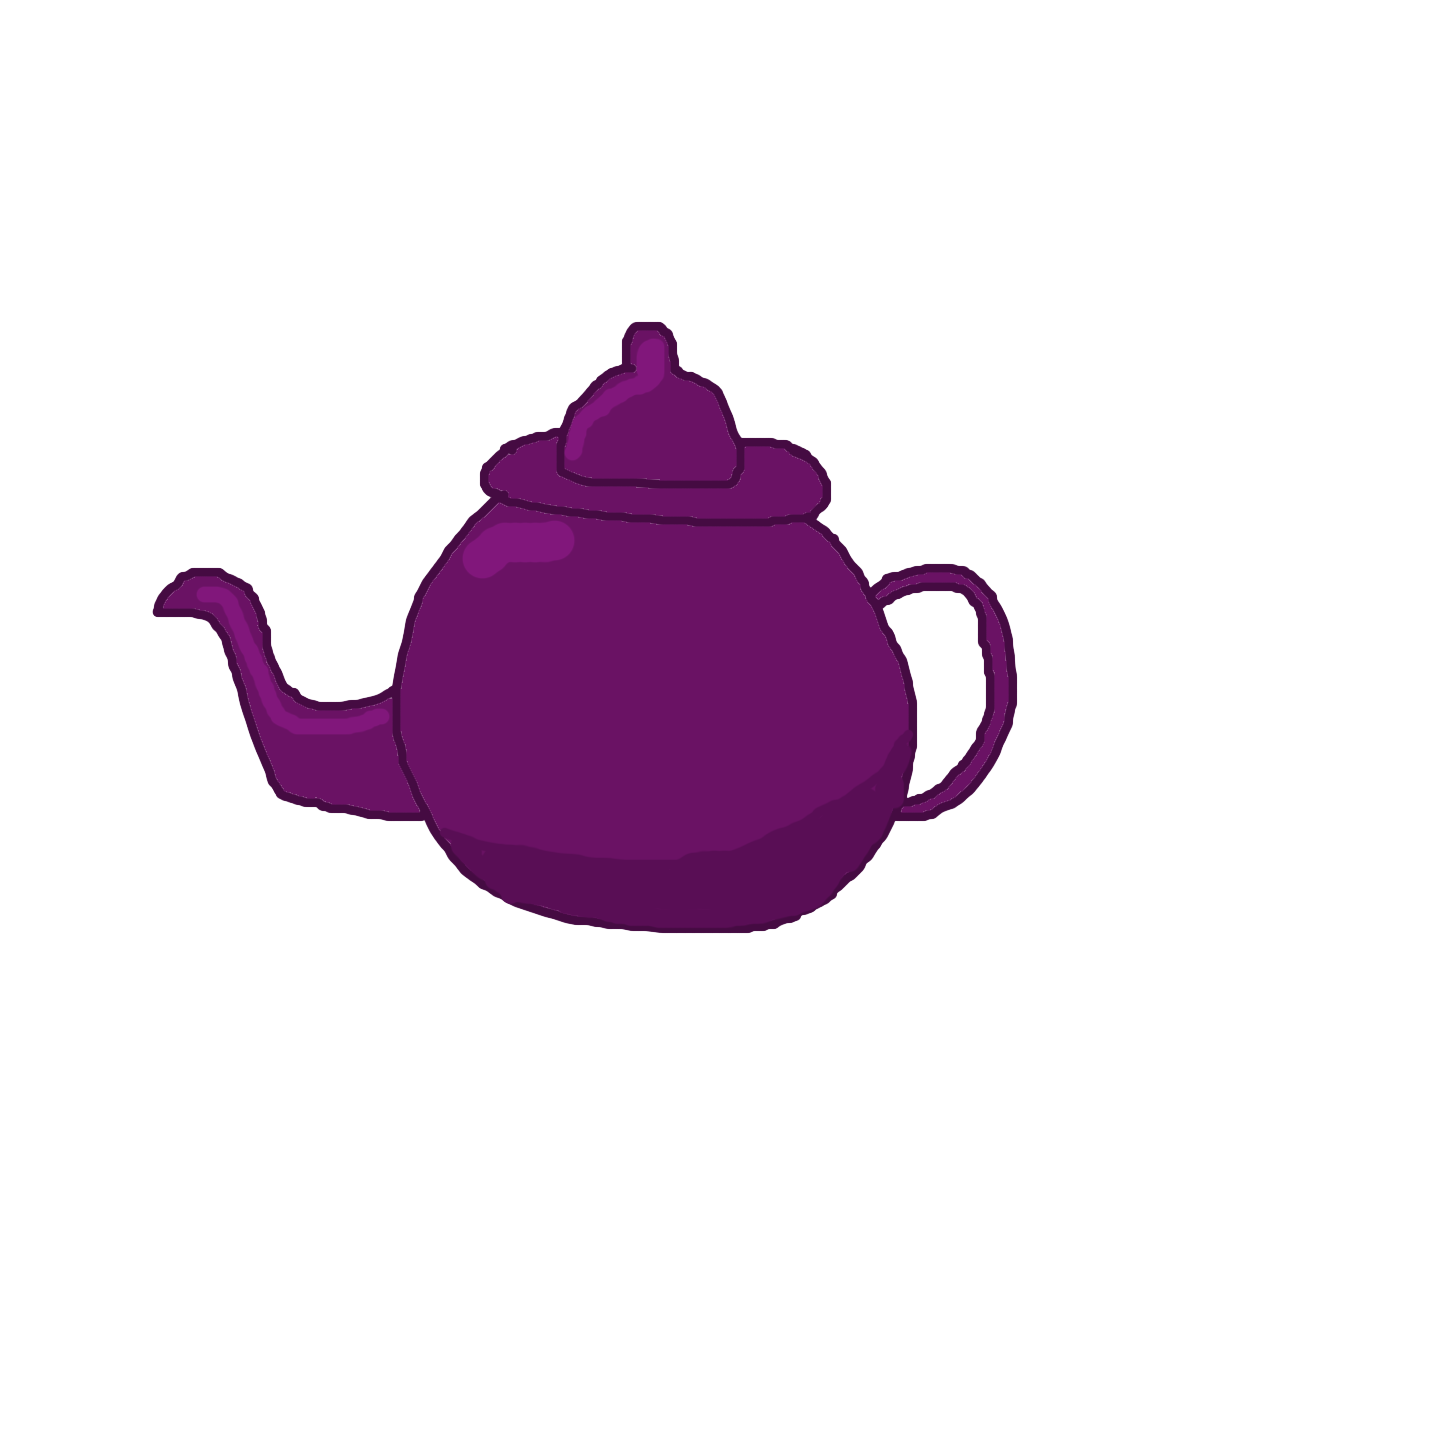 Purple clipart teapot. Image body png official